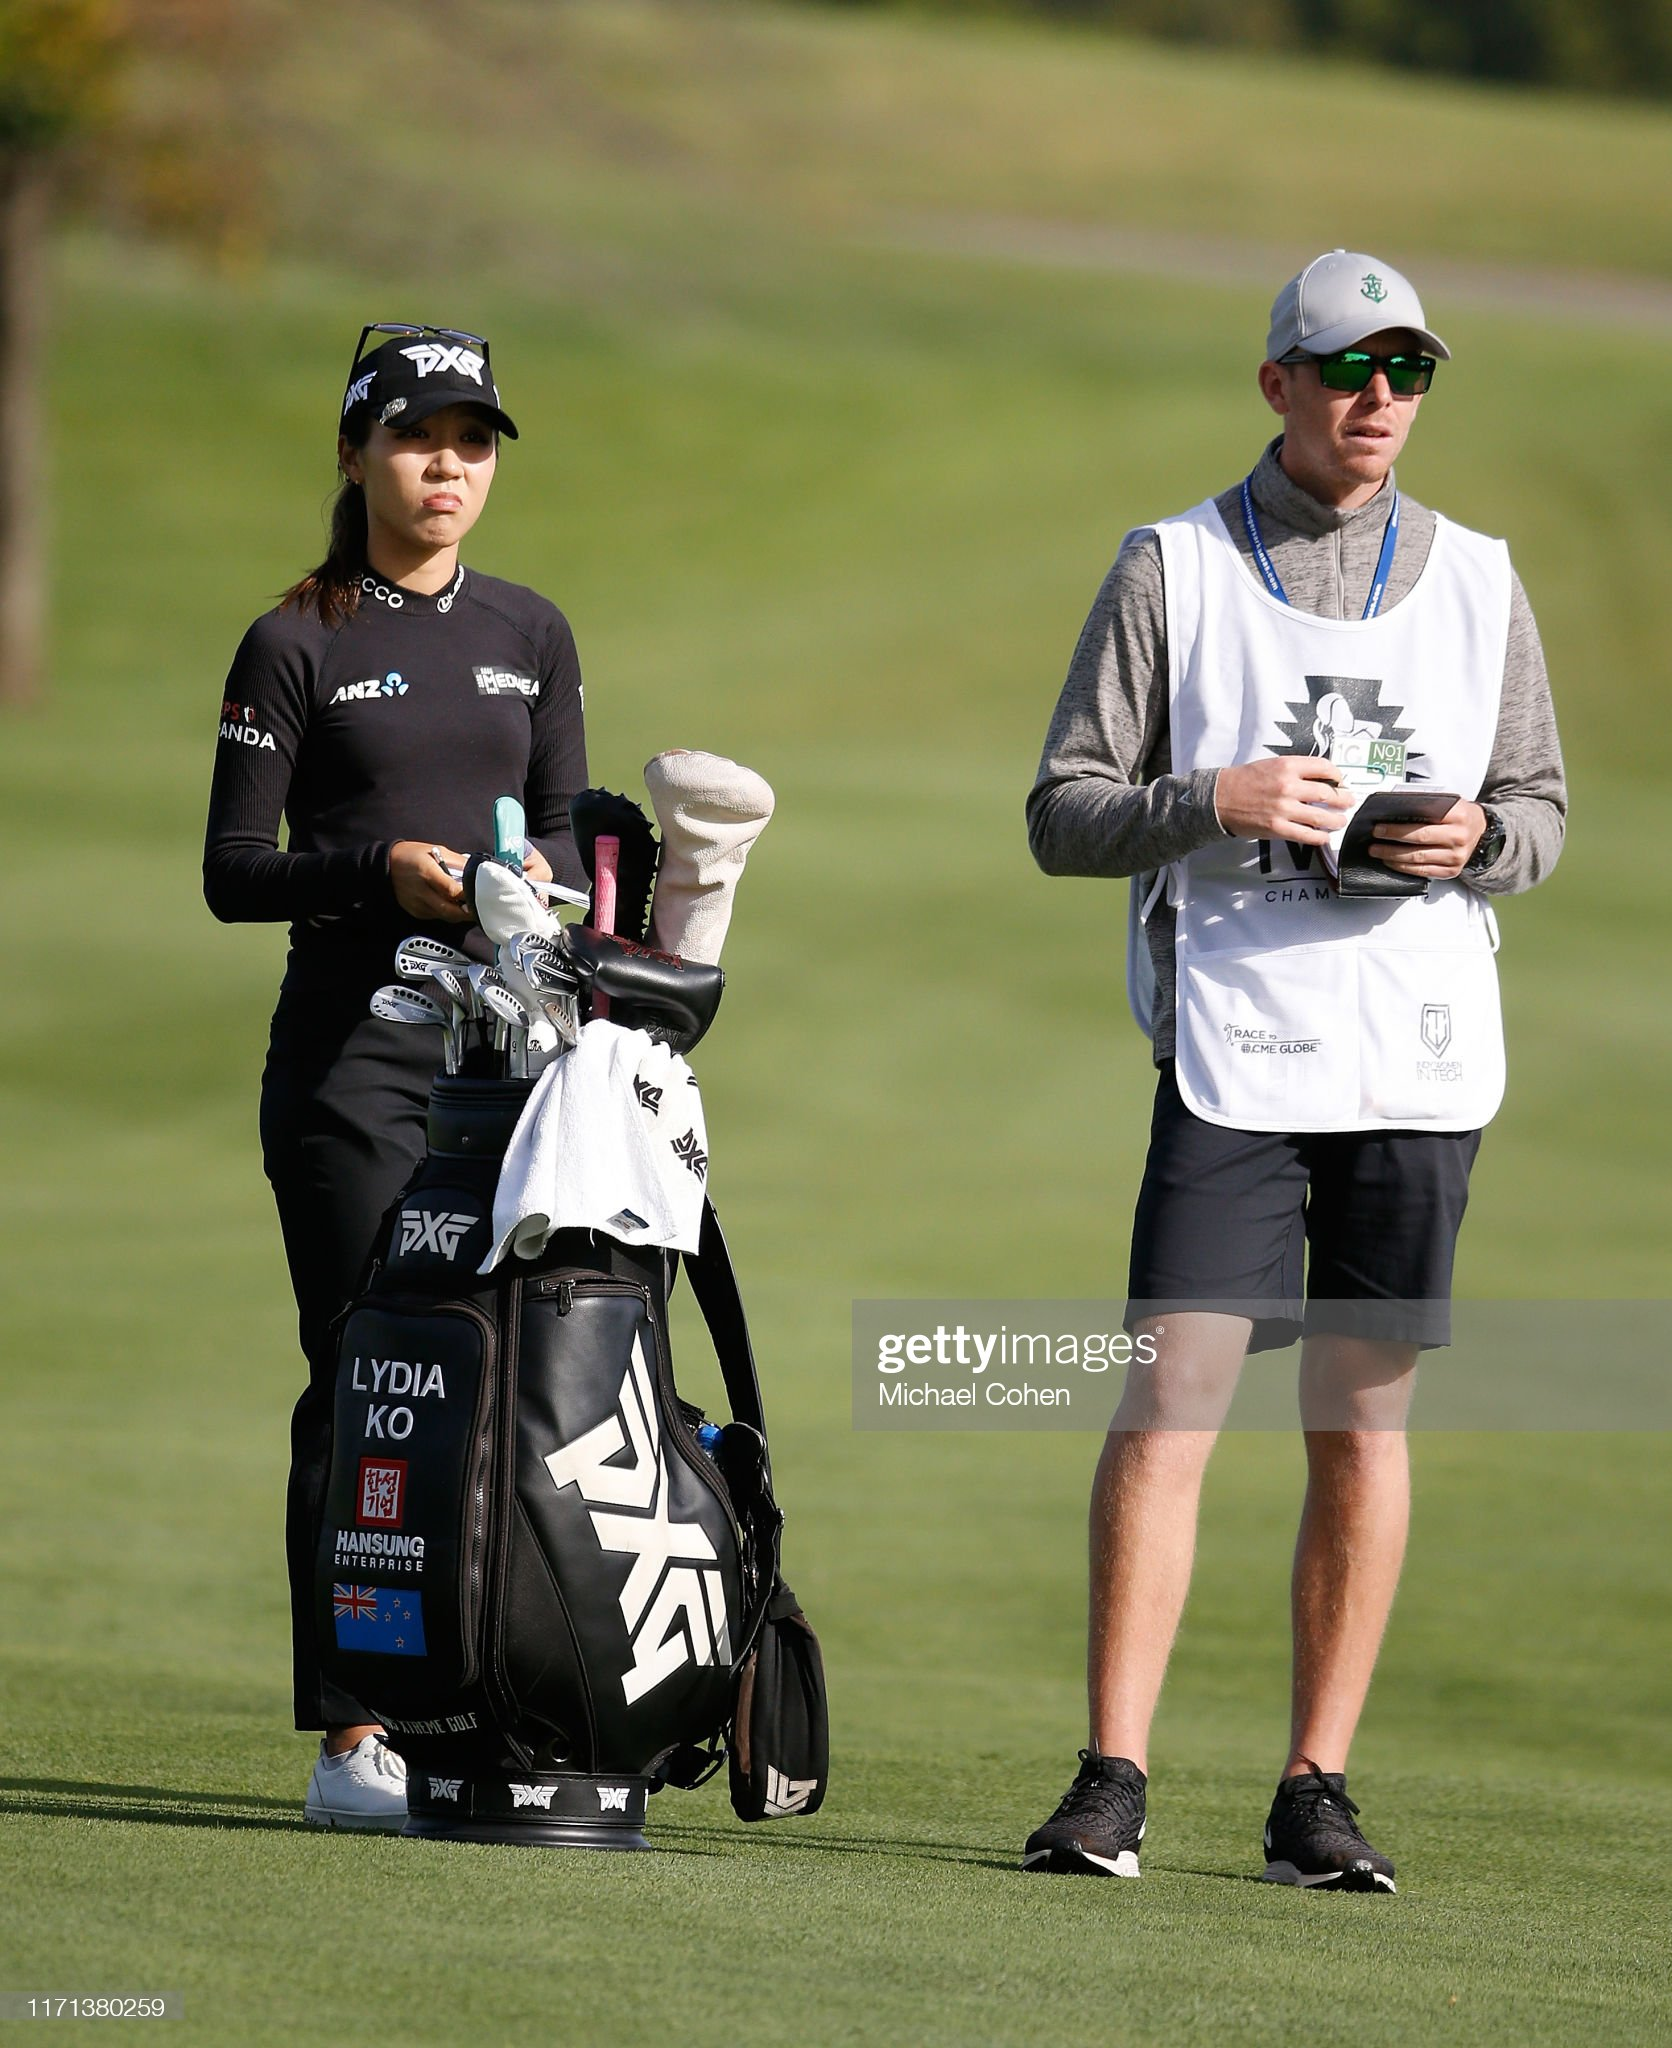 https://media.gettyimages.com/photos/lydia-ko-of-new-zealand-waits-to-play-her-second-shot-on-the-second-picture-id1171380259?s=2048x2048